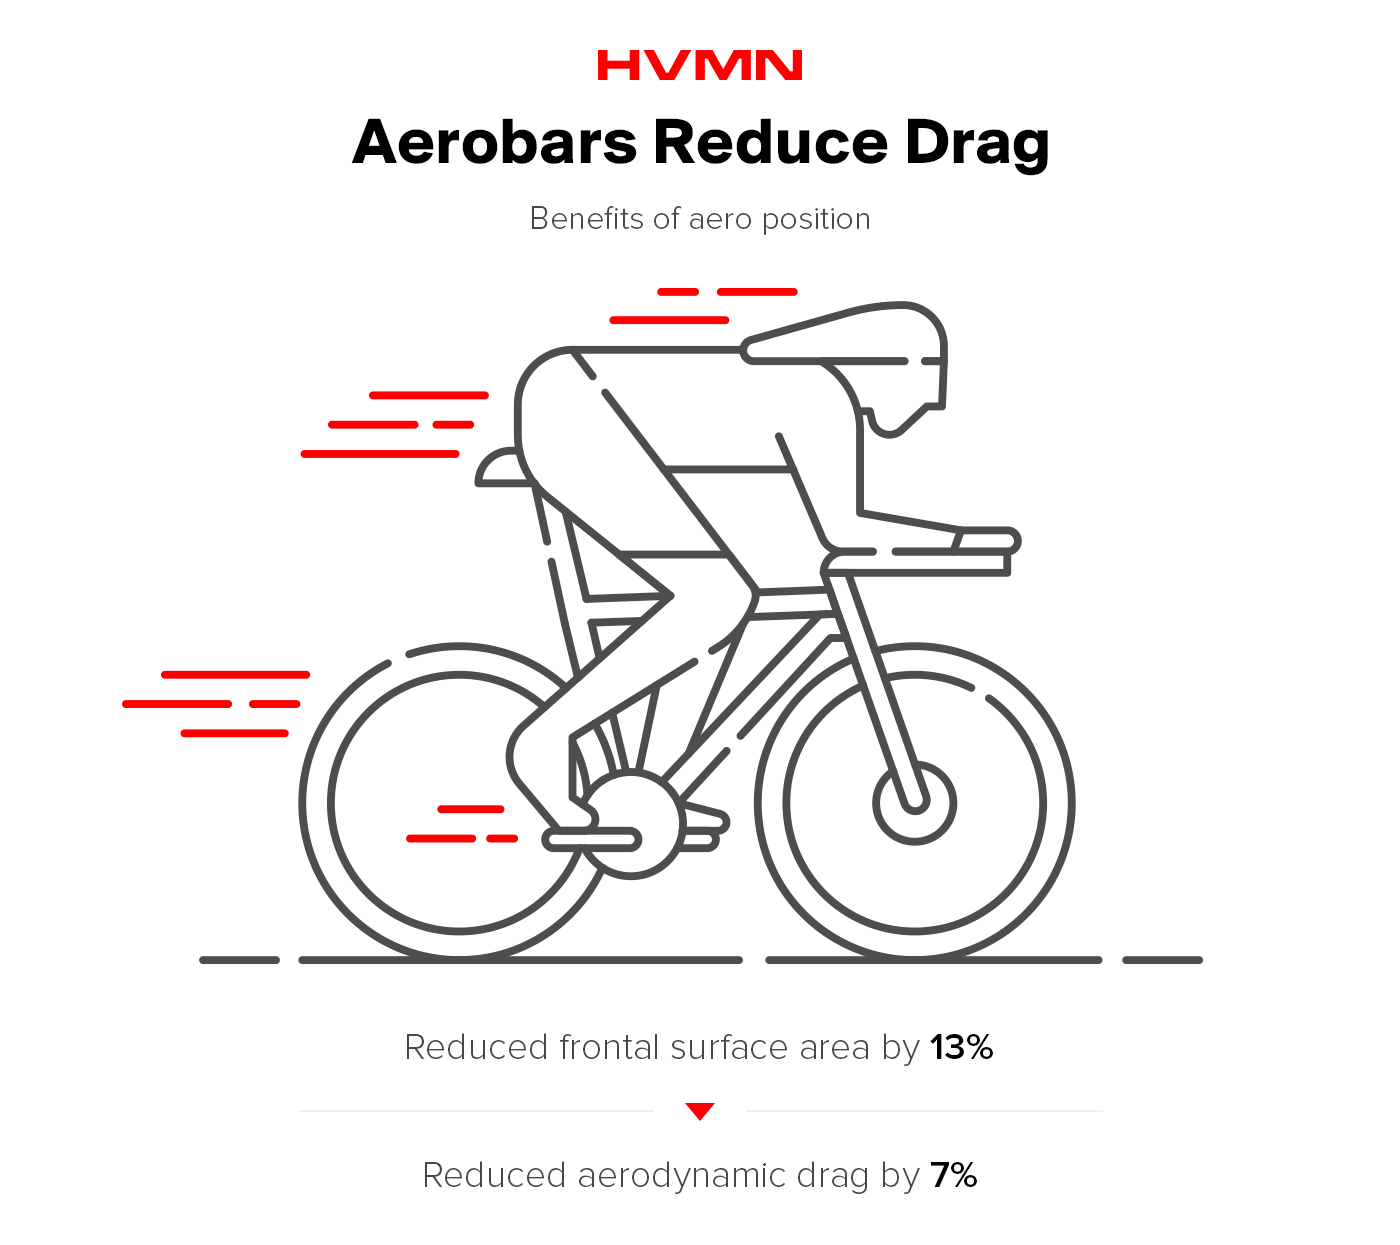 An illustration of a rider in aero position, using aerobars, to show how they reduce drag